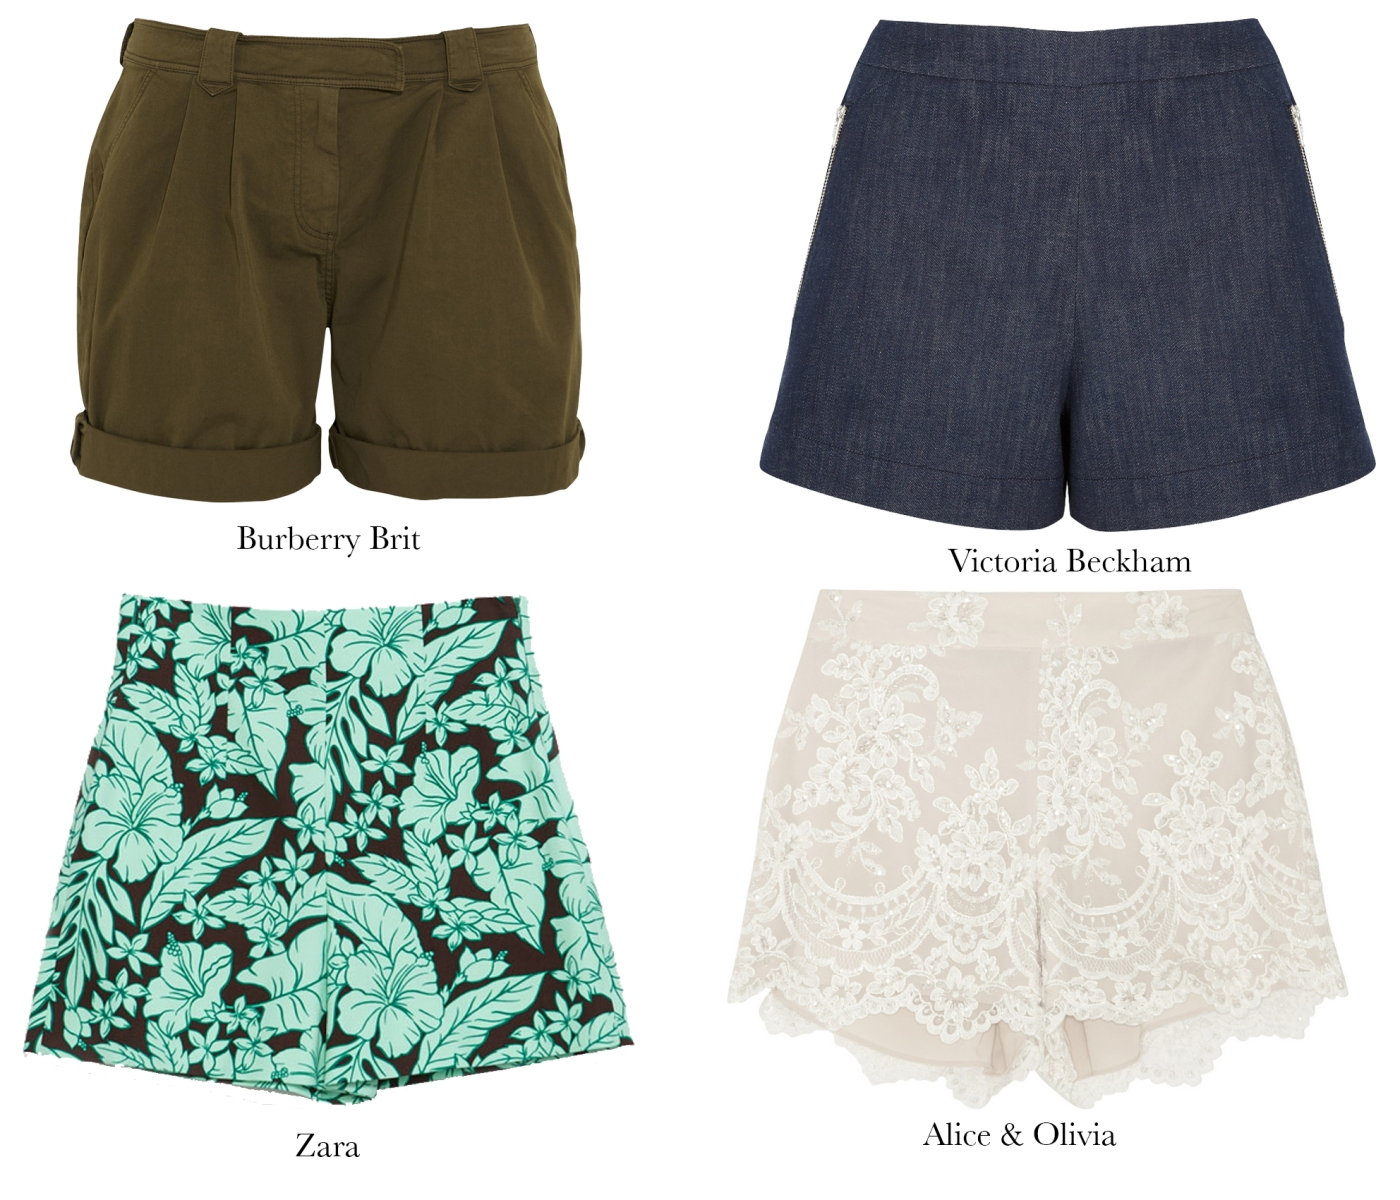 The Summer Shorts